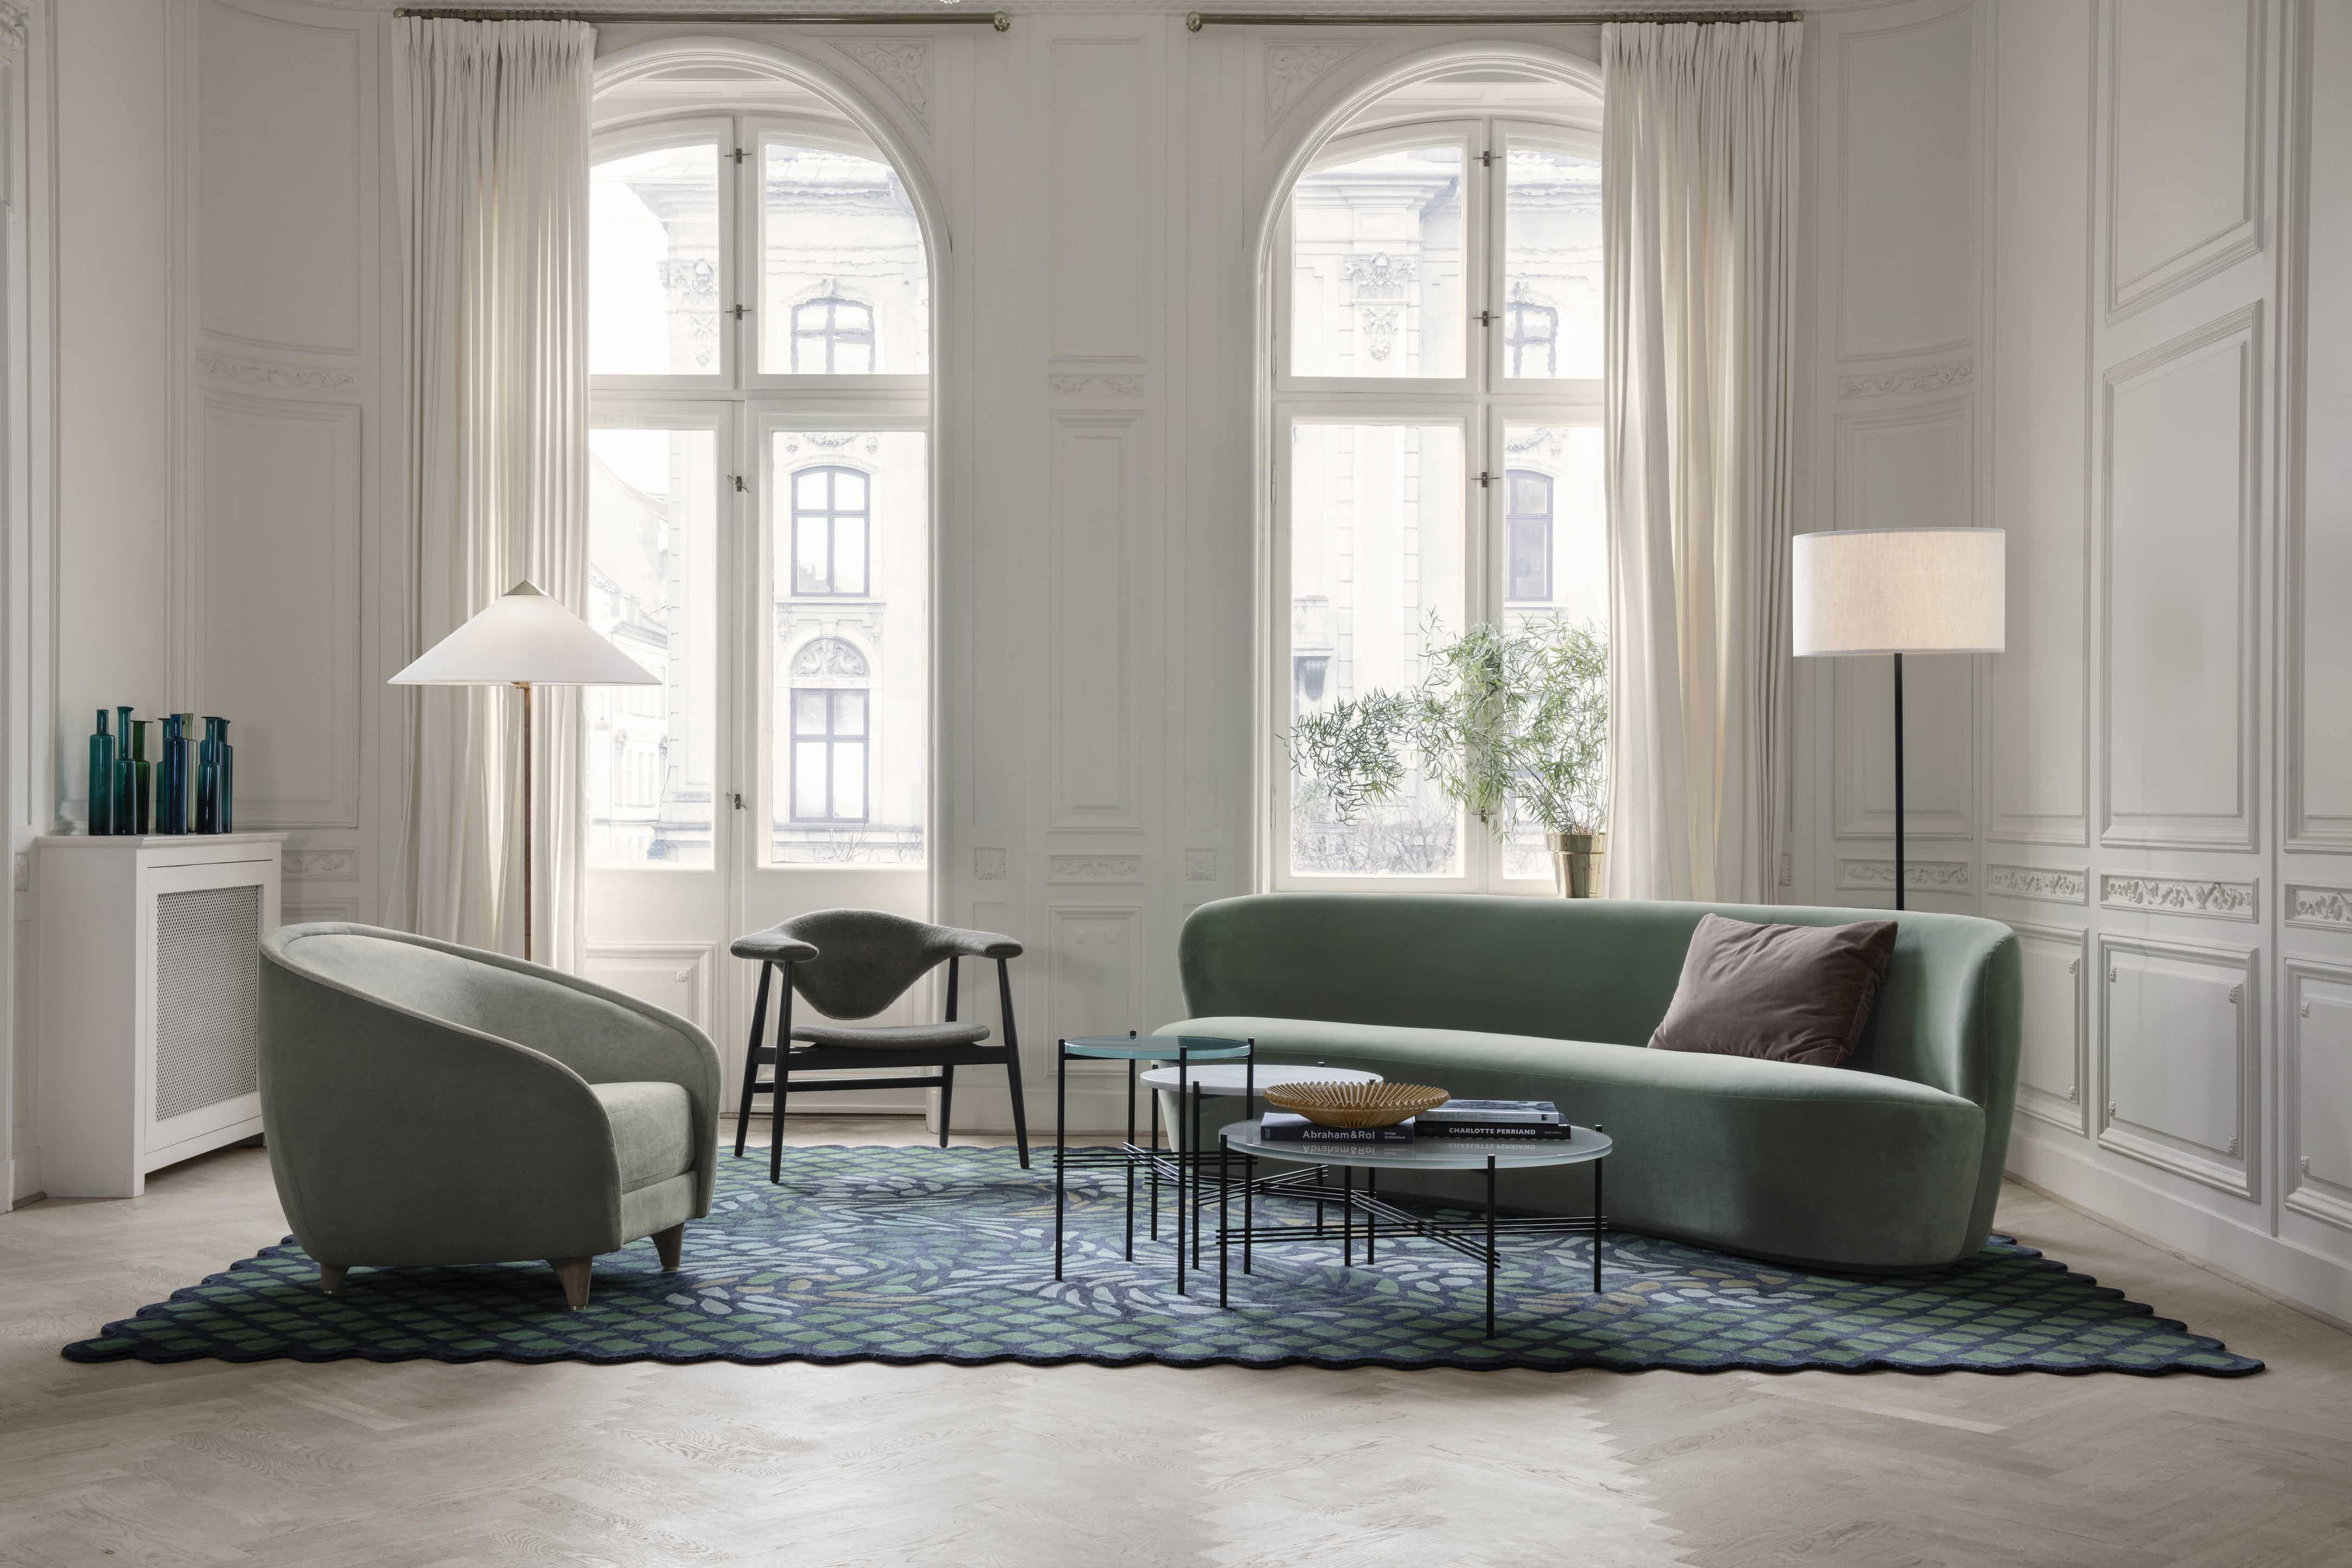 Gubi-stay-oval-sofa-revers-lounge-chair-insitu-haute-living